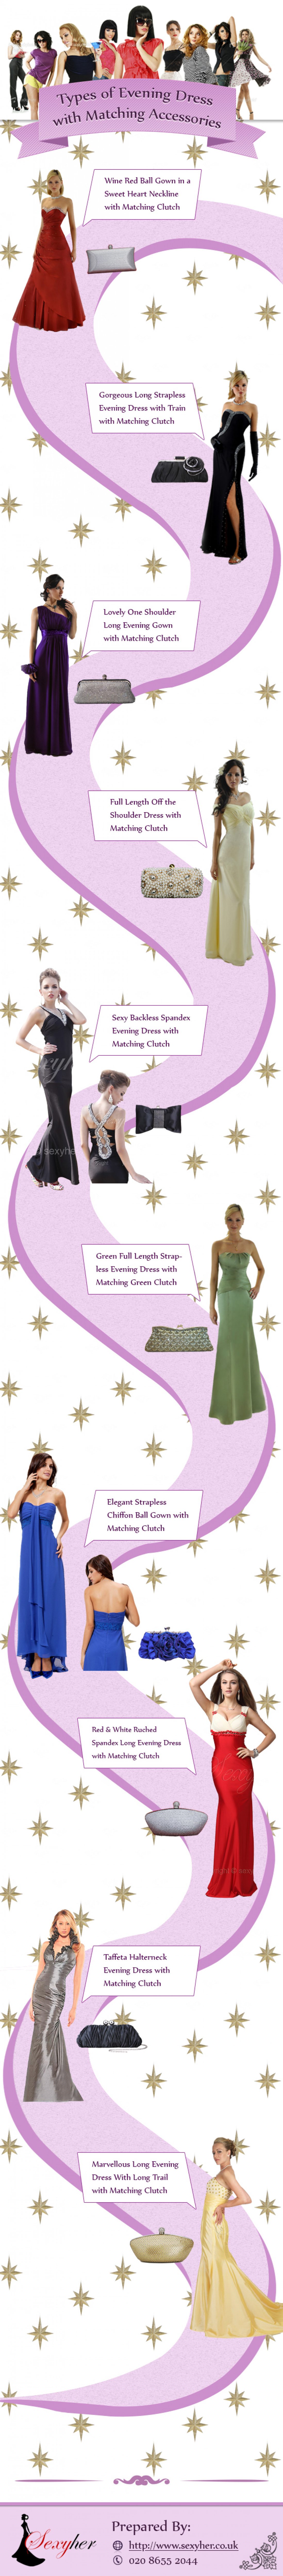 Types of Evening Dress with Matching Accessories Infographic